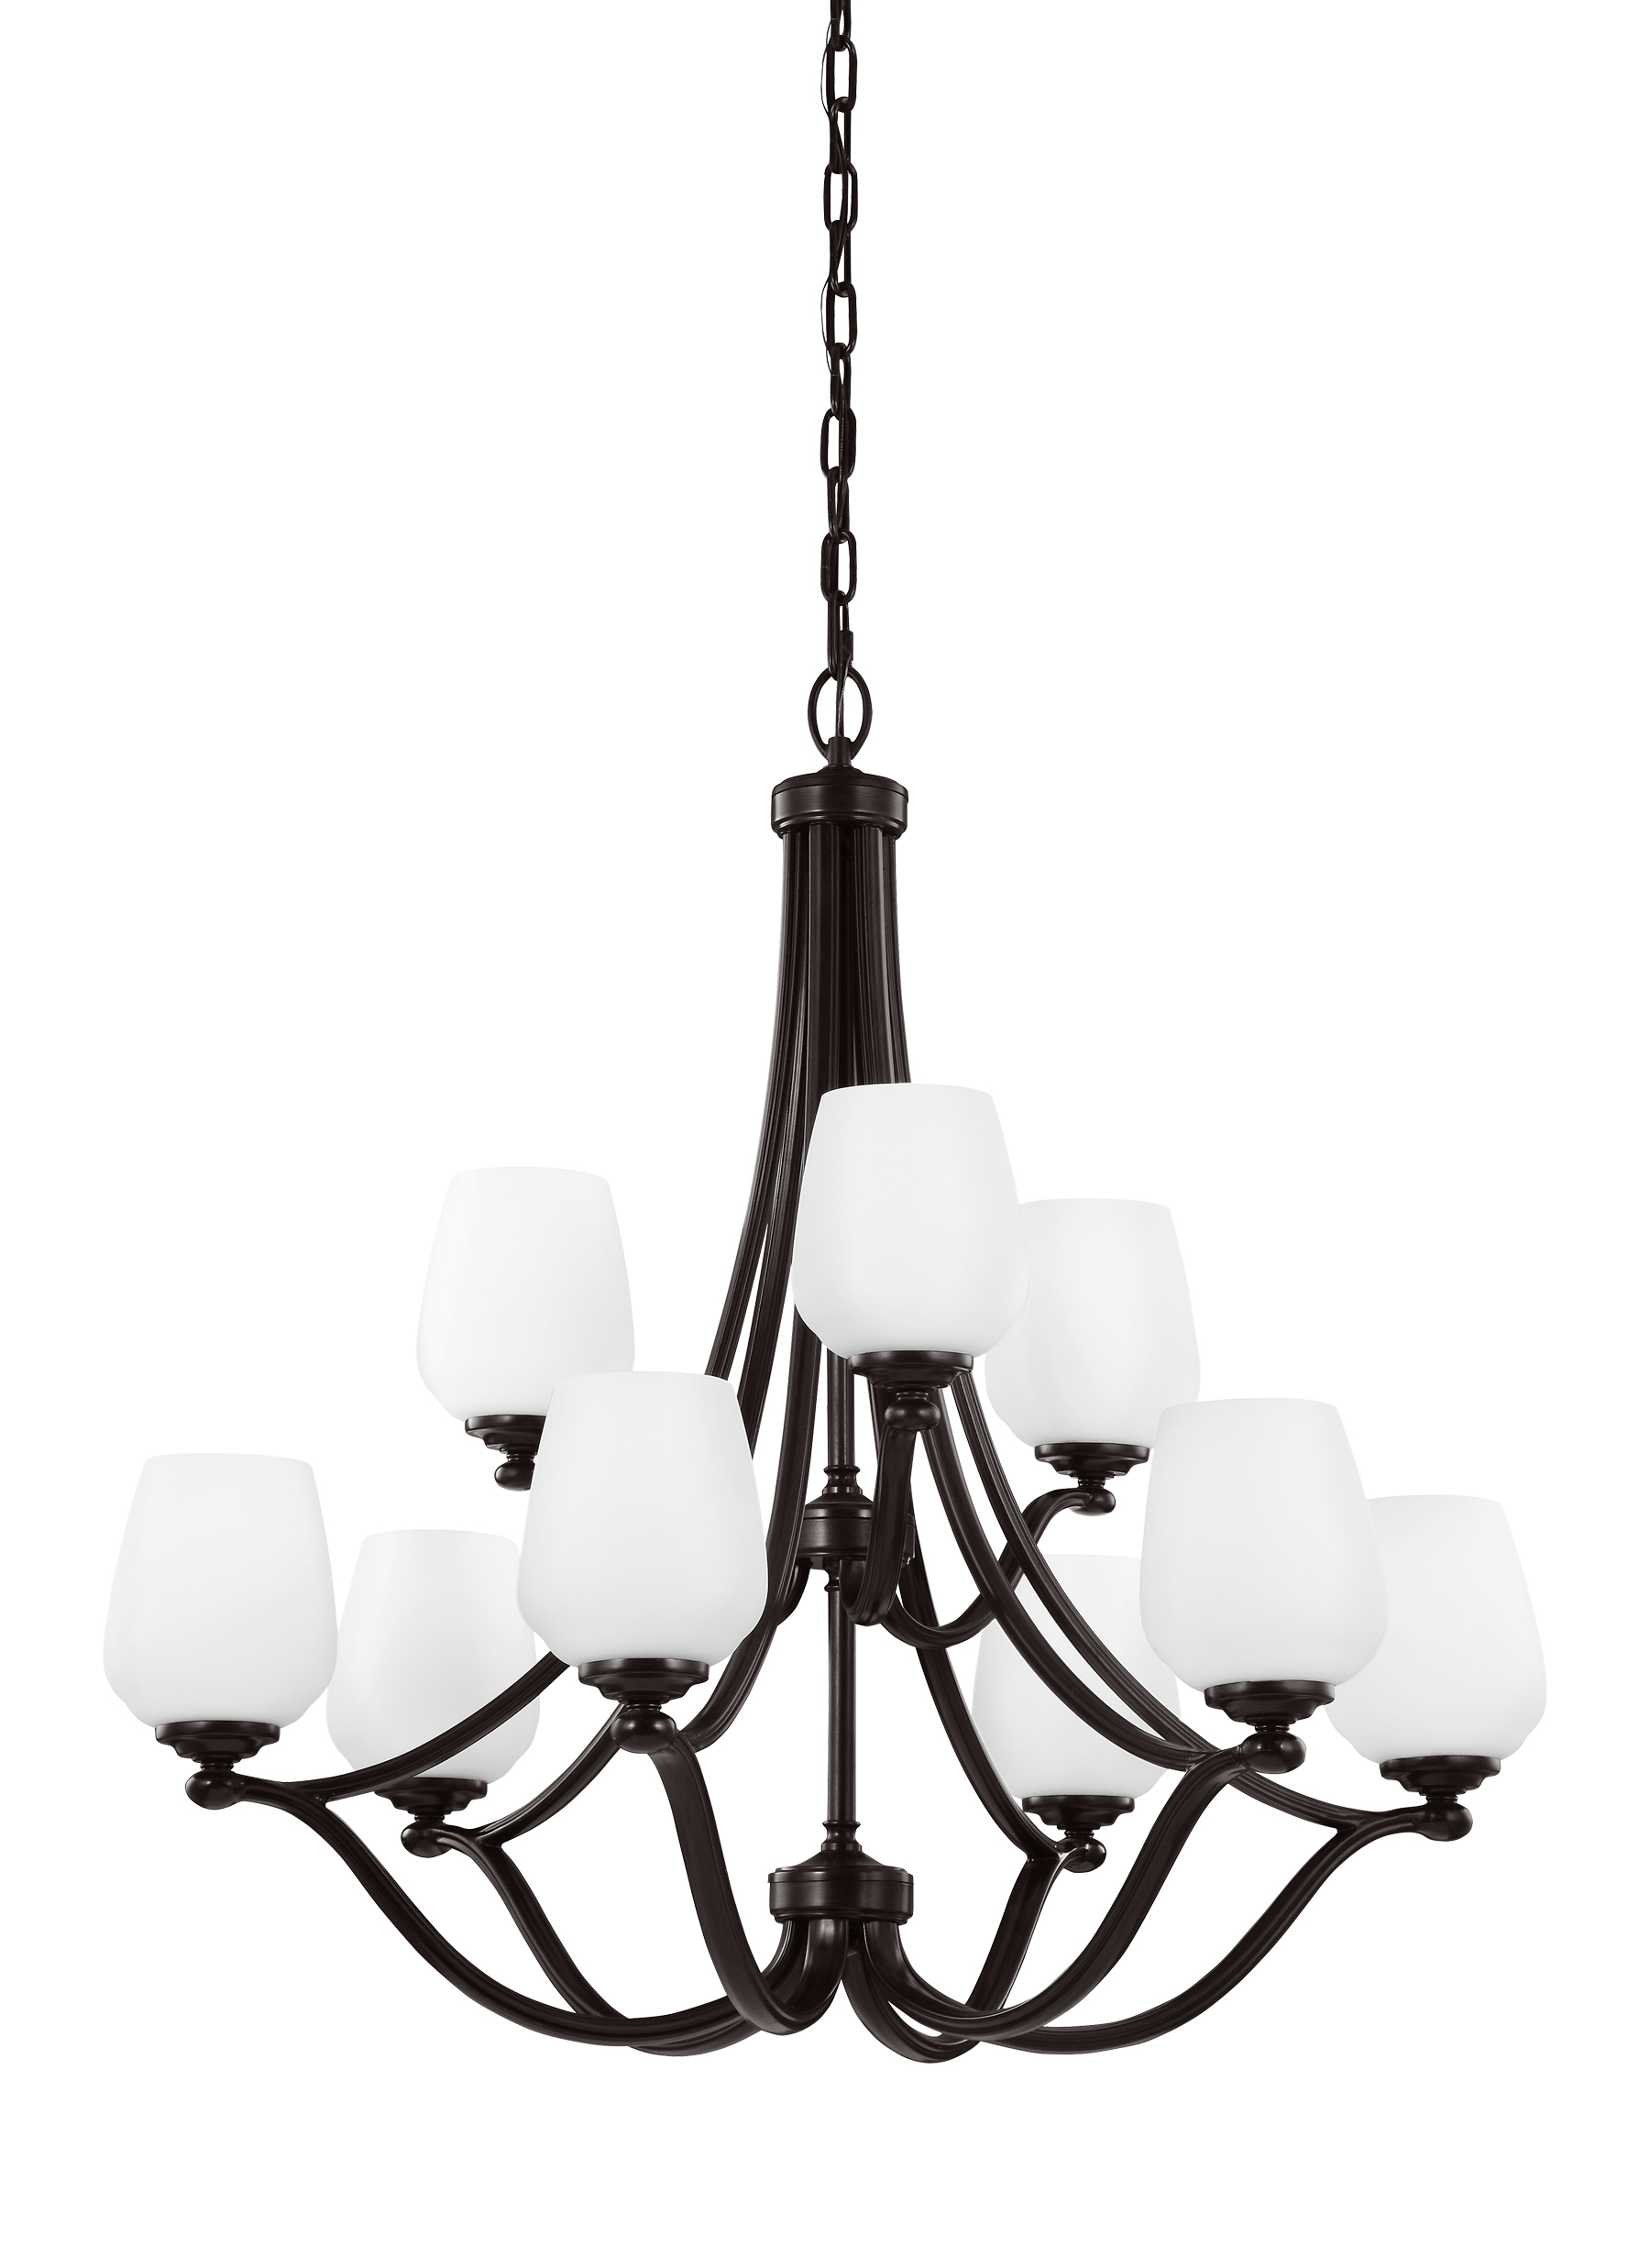 Feiss charlotte chandelier page 3 fallcreekonline valentina source vintner collection from feiss arubaitofo Gallery